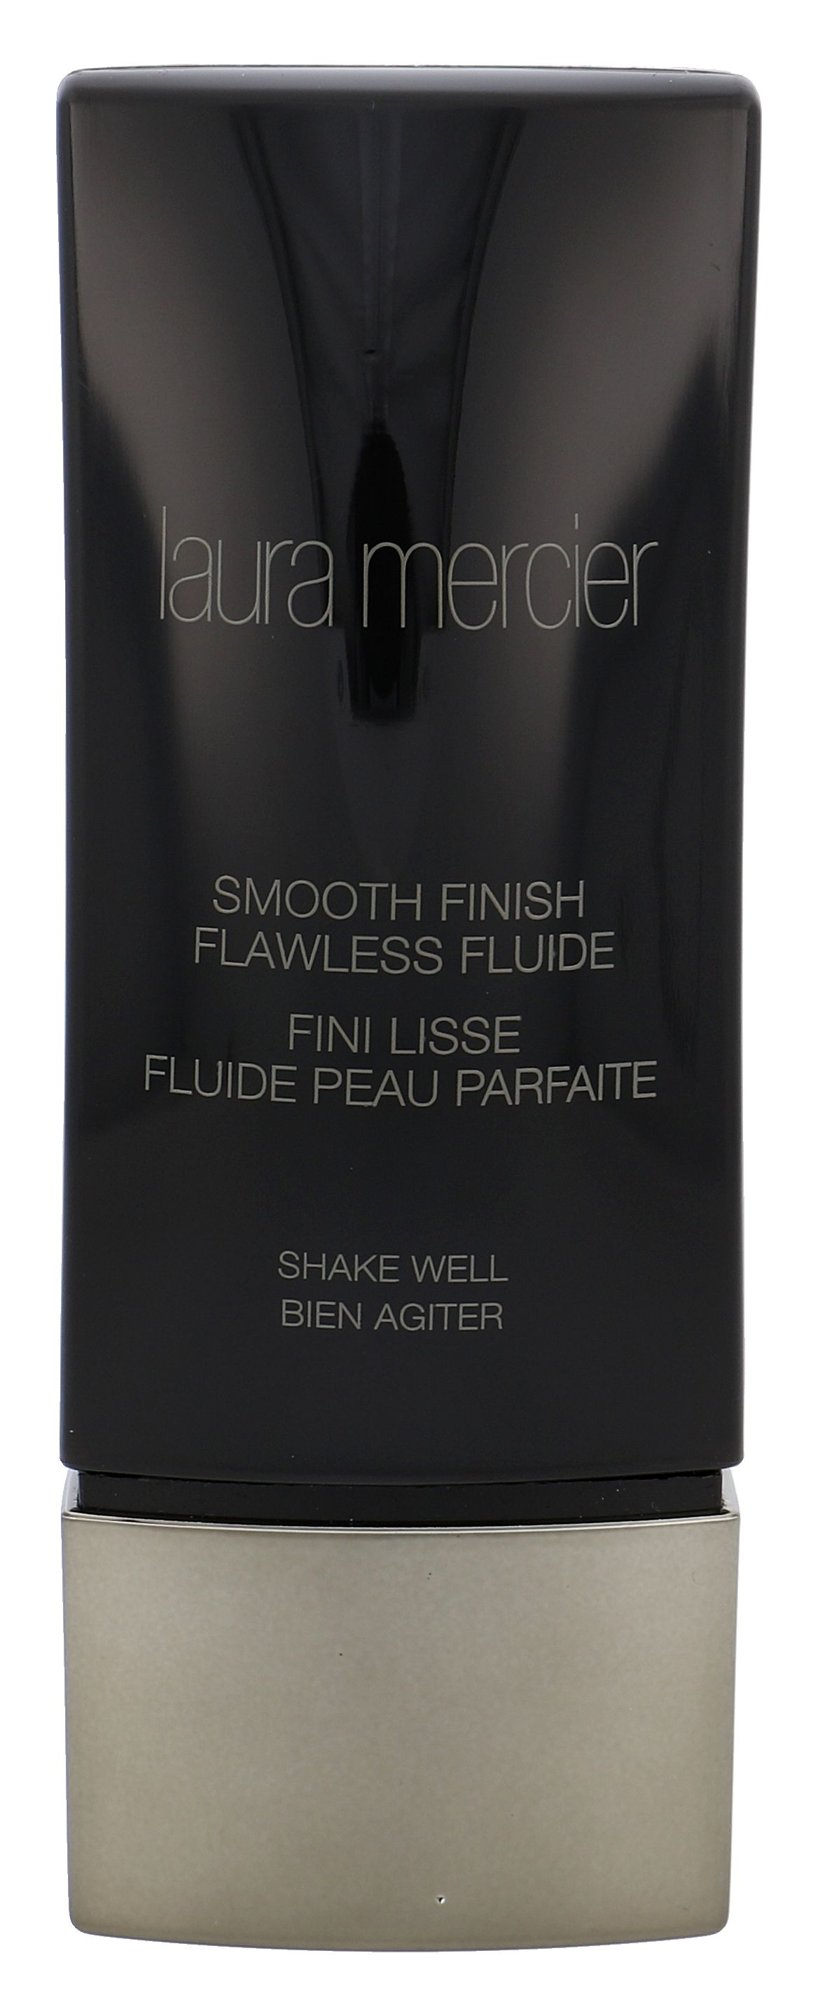 Laura Mercier Smooth Finish Flawless Fluide Cosmetic 30ml Cashew